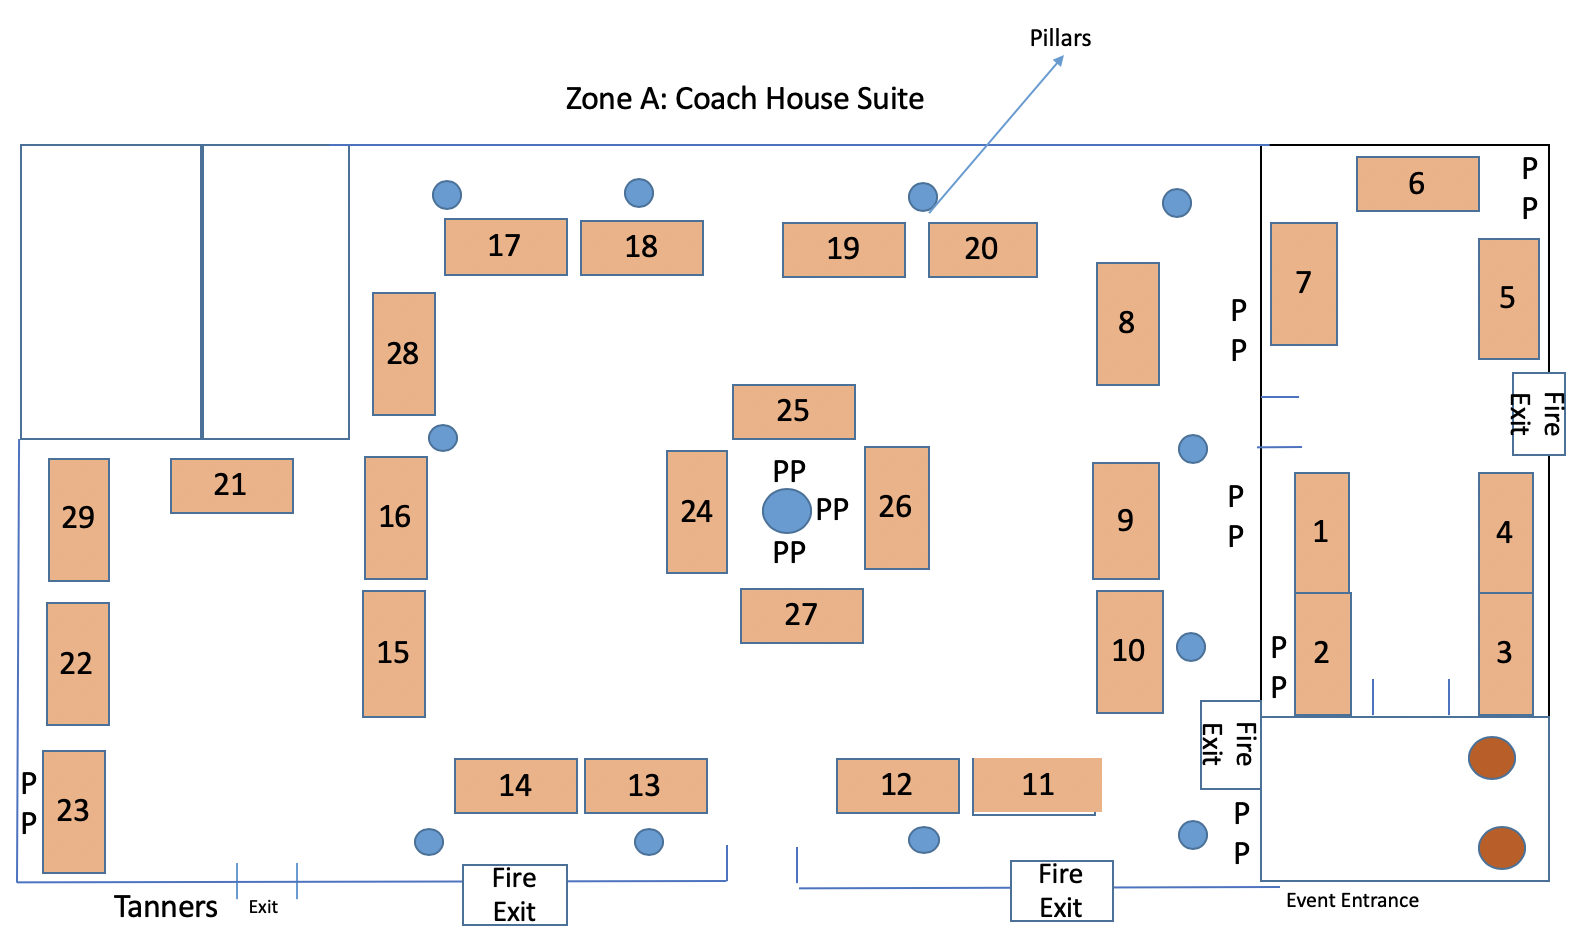 Zone A: Coach House Suite incorporating The Mill Room